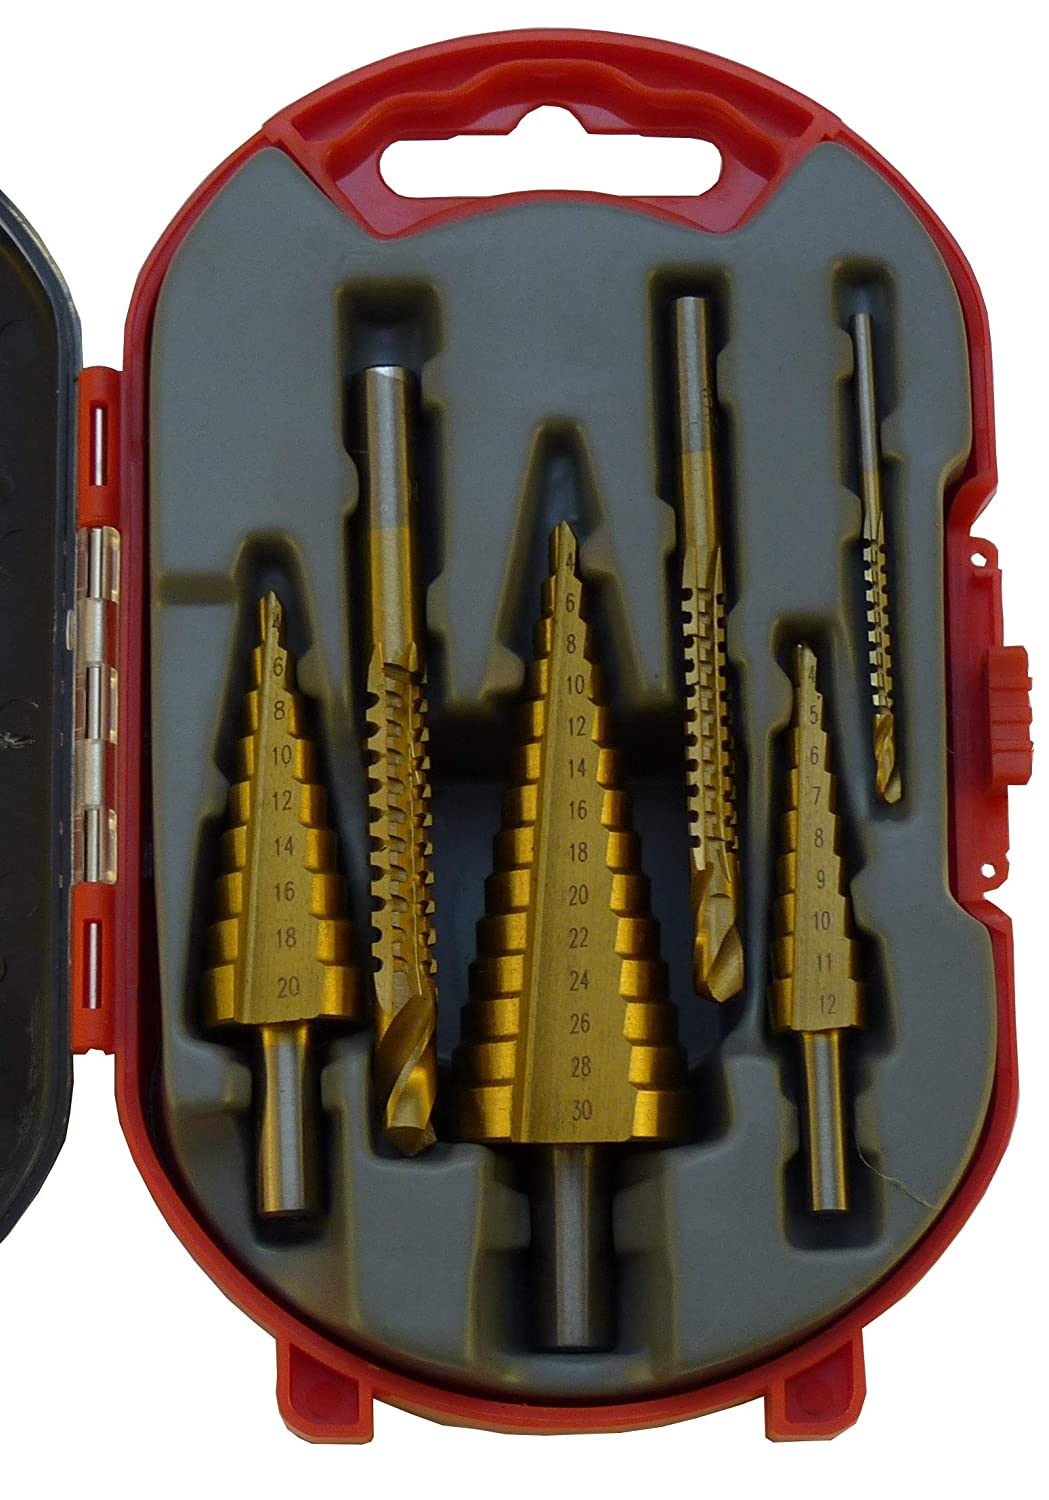 All4Car WT-405 Weber-tools Steps Drill, 4 mm - 30 mm All 4 Car Bv